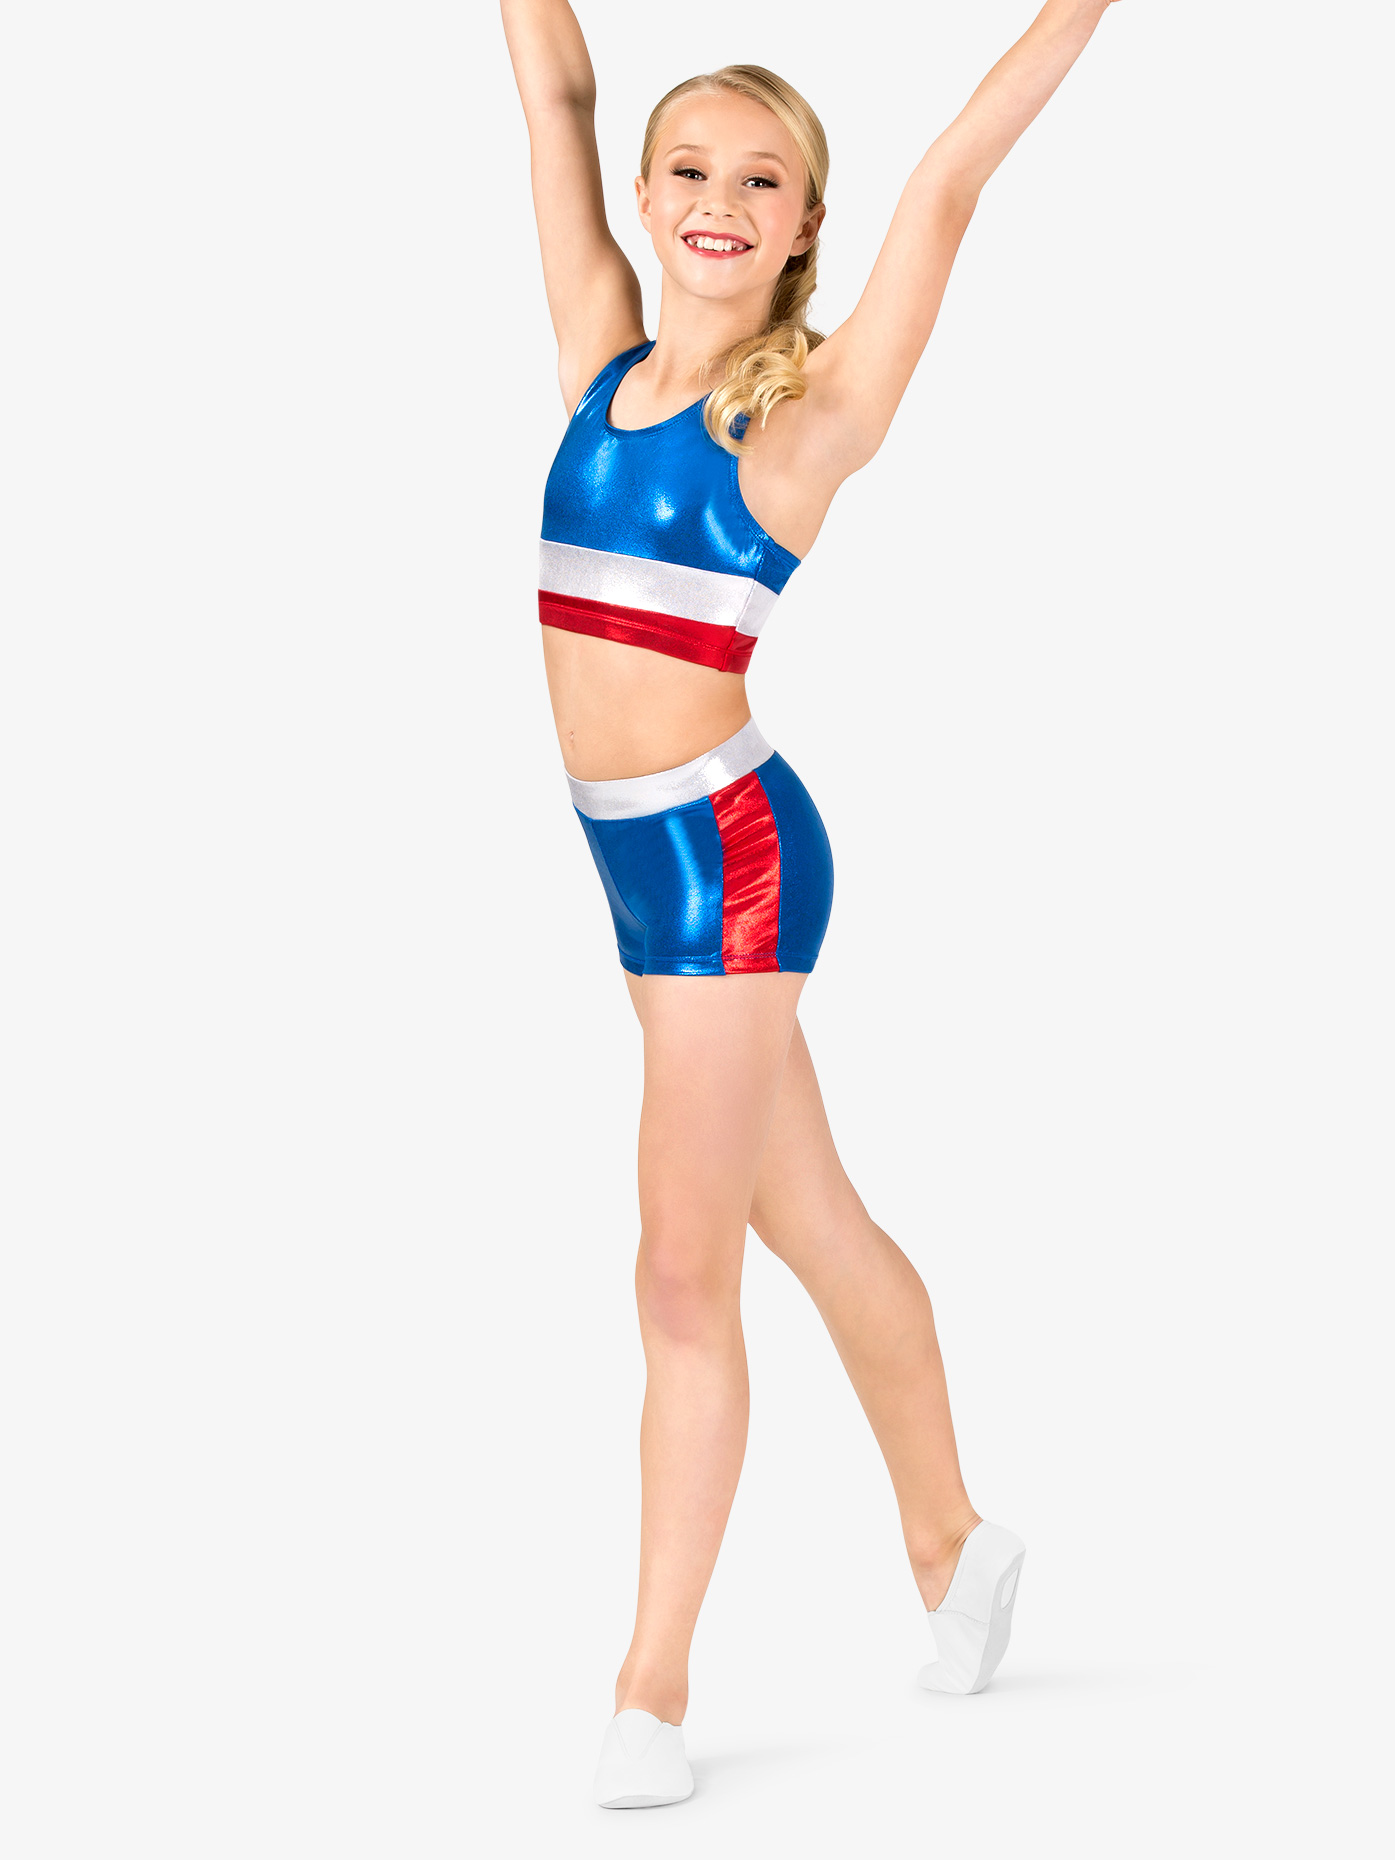 Perfect Balance Girls Gymnastics Patriotic Print Shorts G688C